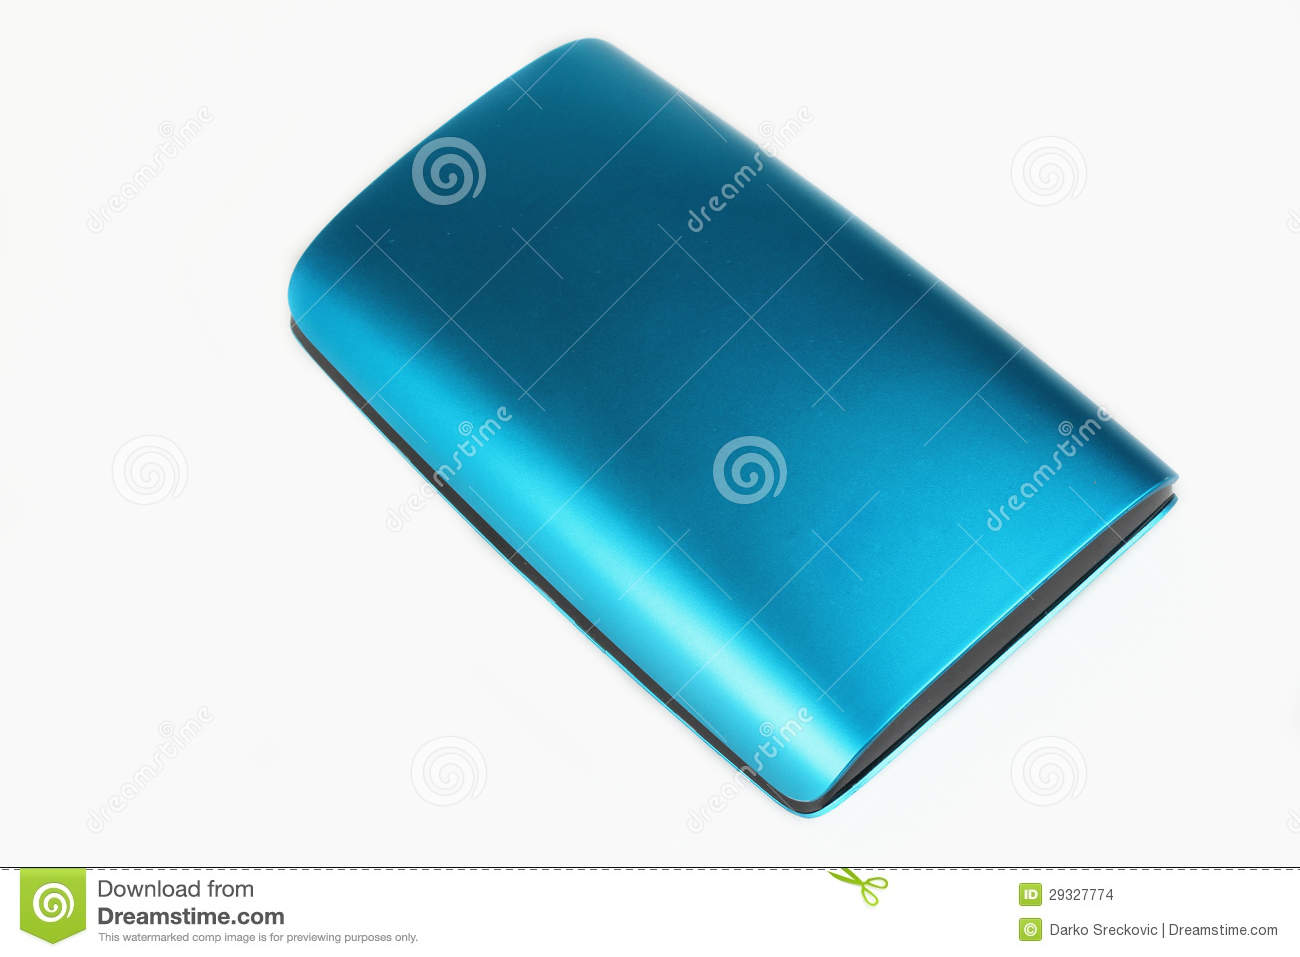 how to make image of external hard drive